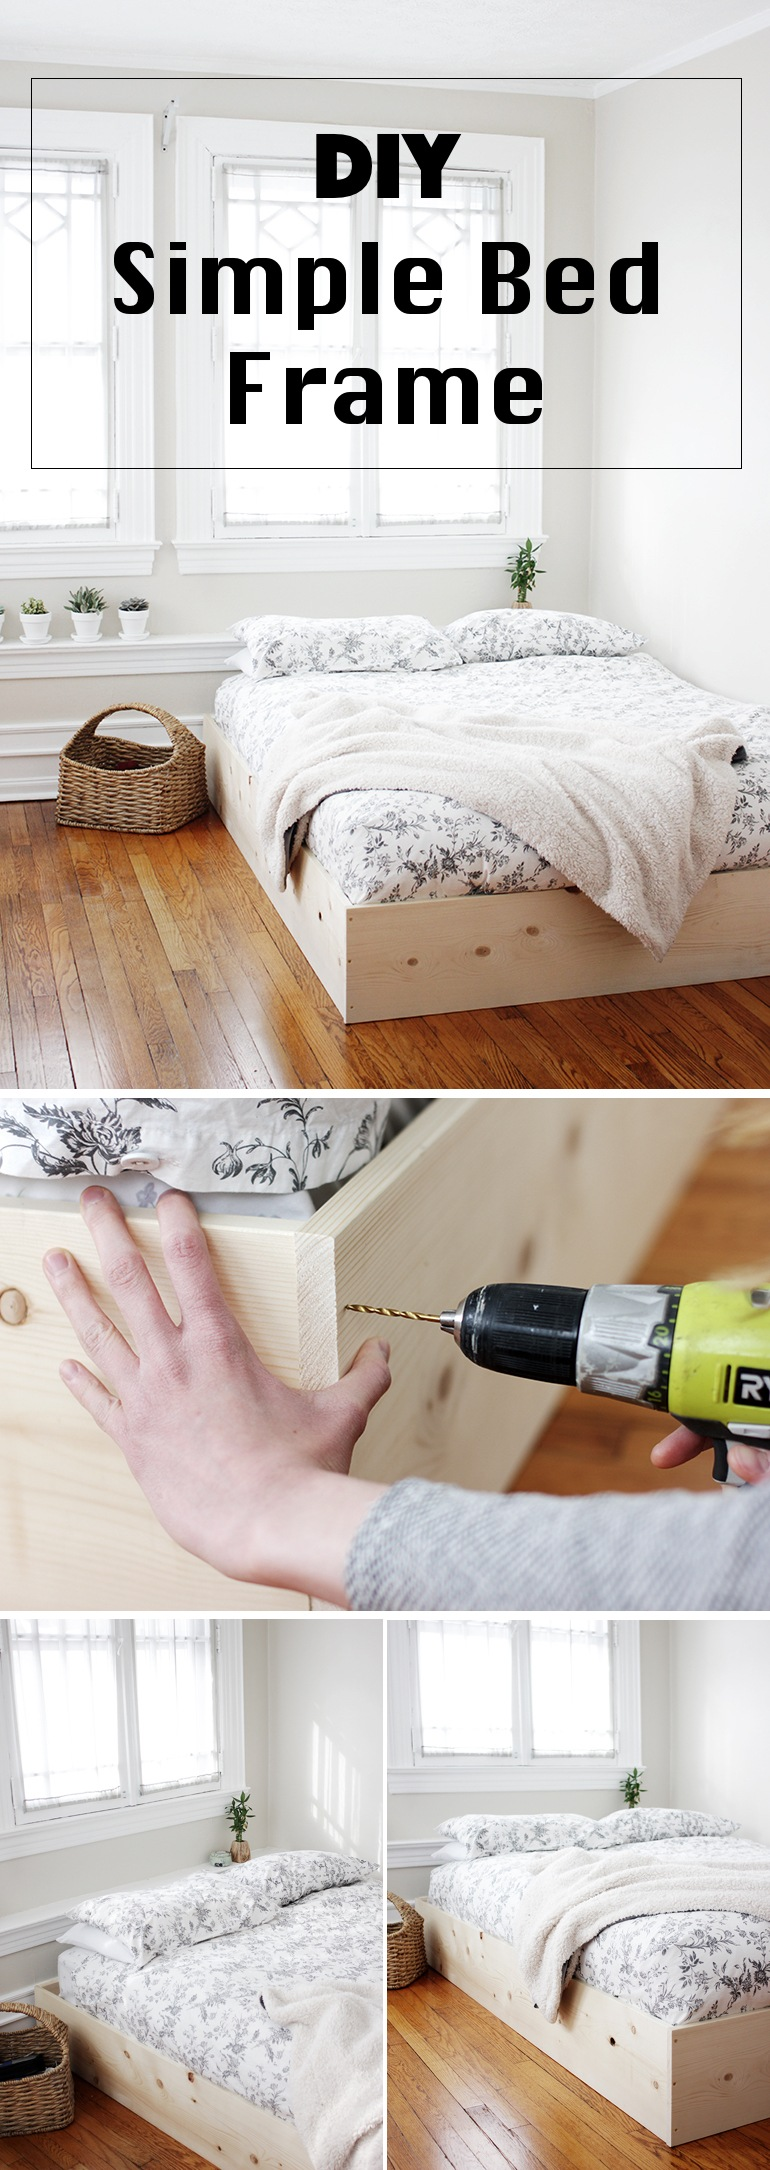 Simple Bed 36 Easy Diy Bed Frame Projects To Upgrade Your Bedroom Homelovr